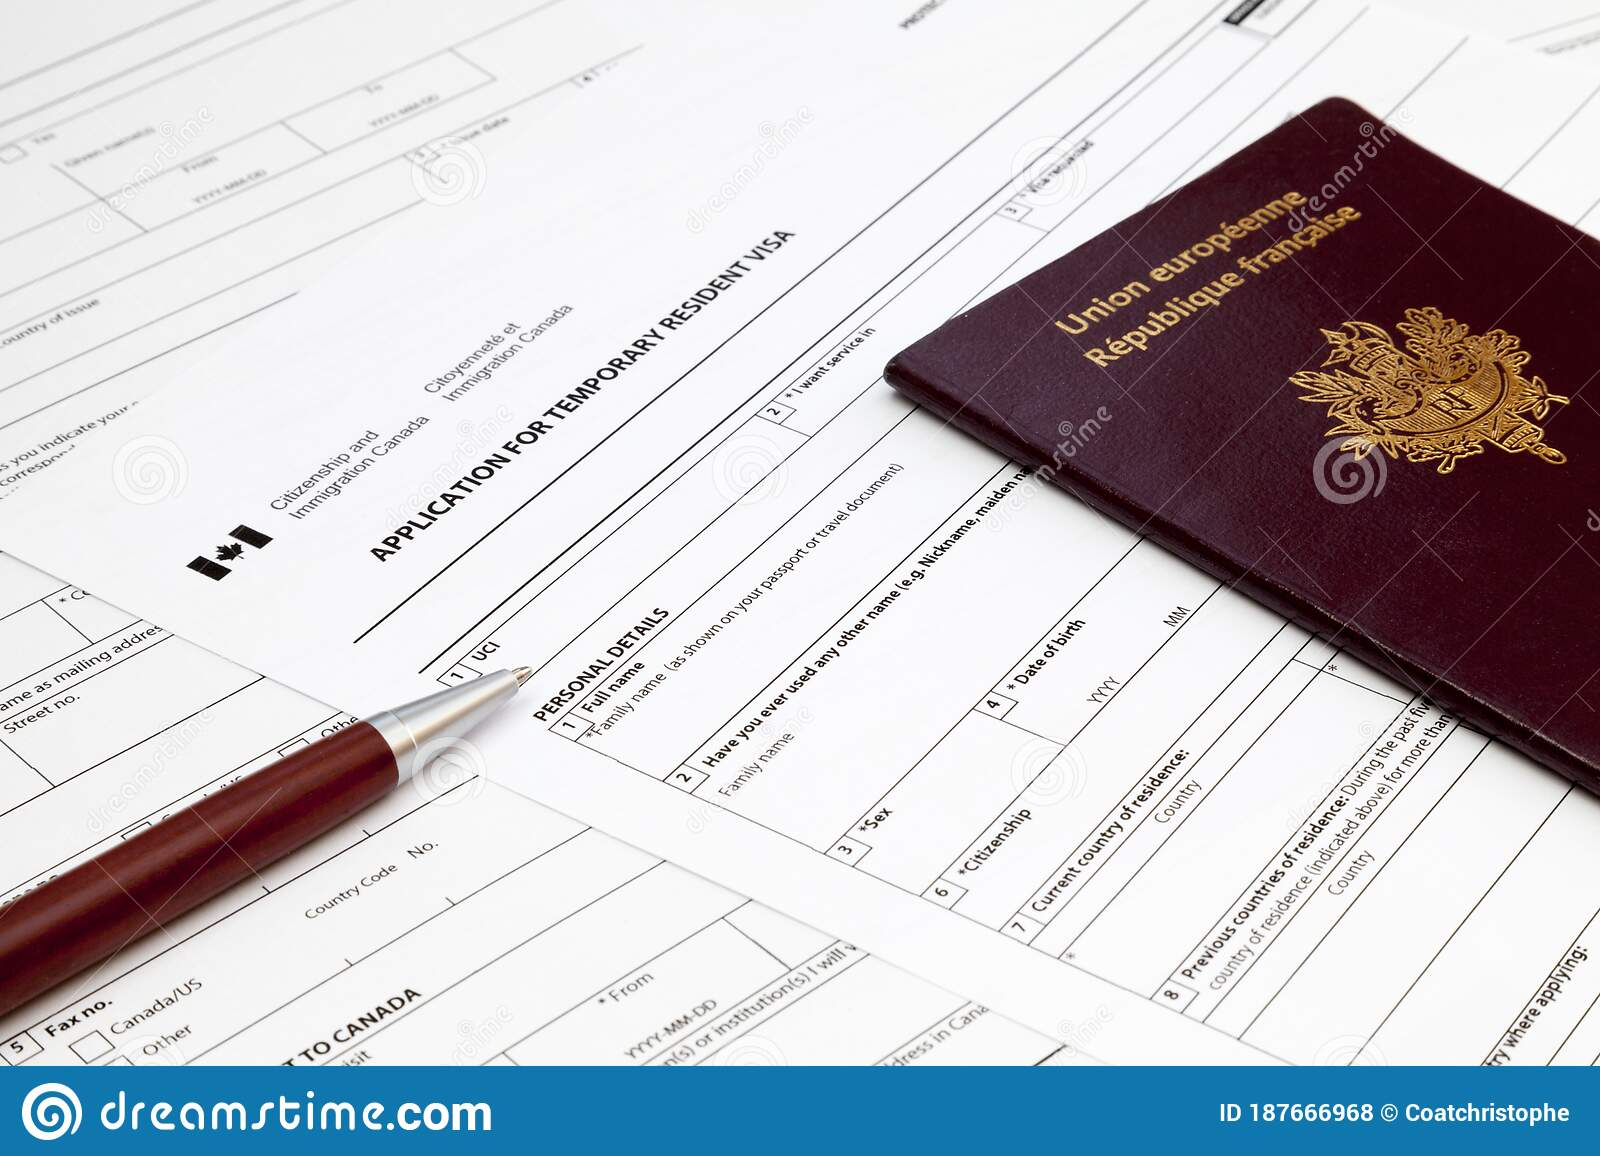 Canadian Temporary Resident Visa Application Form Editorial Stock Photo Image Of System Resident 187666968